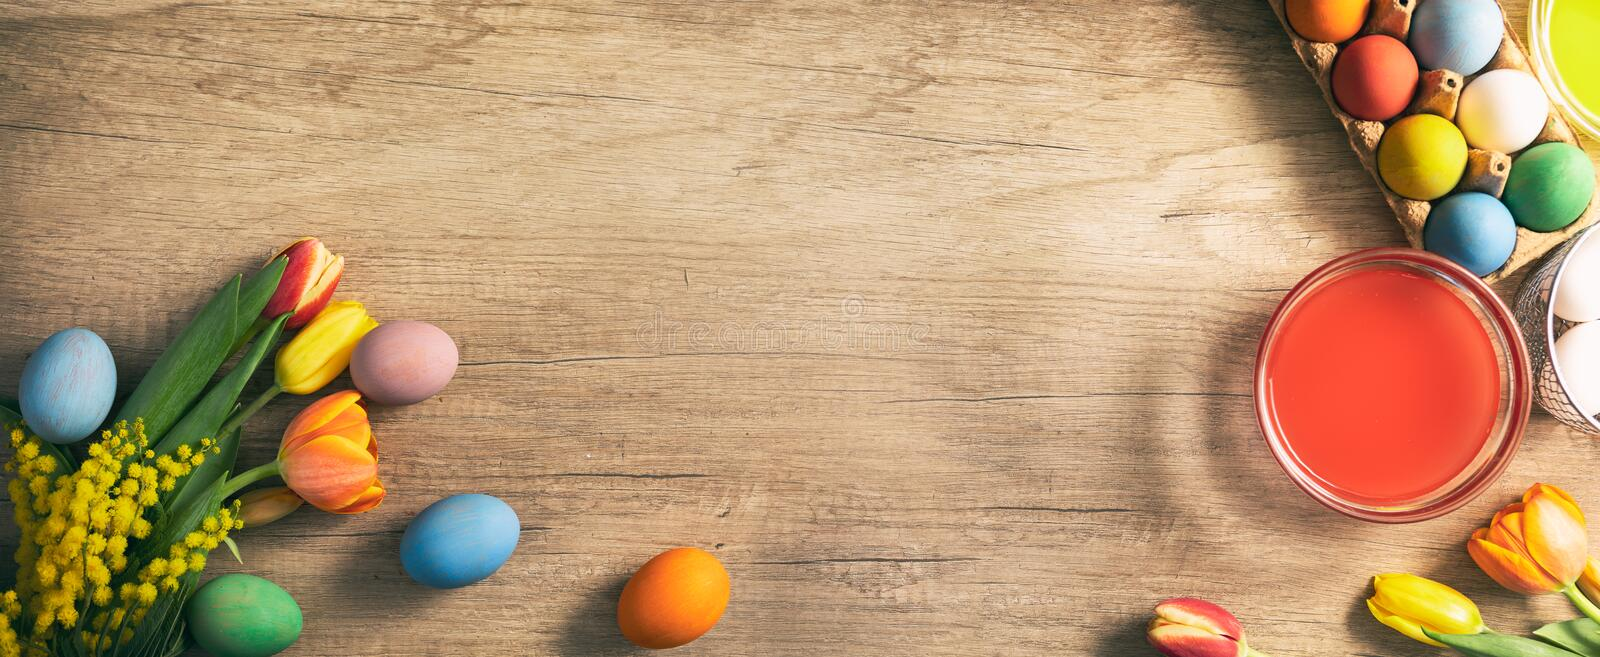 Easter eggs with sprig flowers on wooden table royalty free stock photo